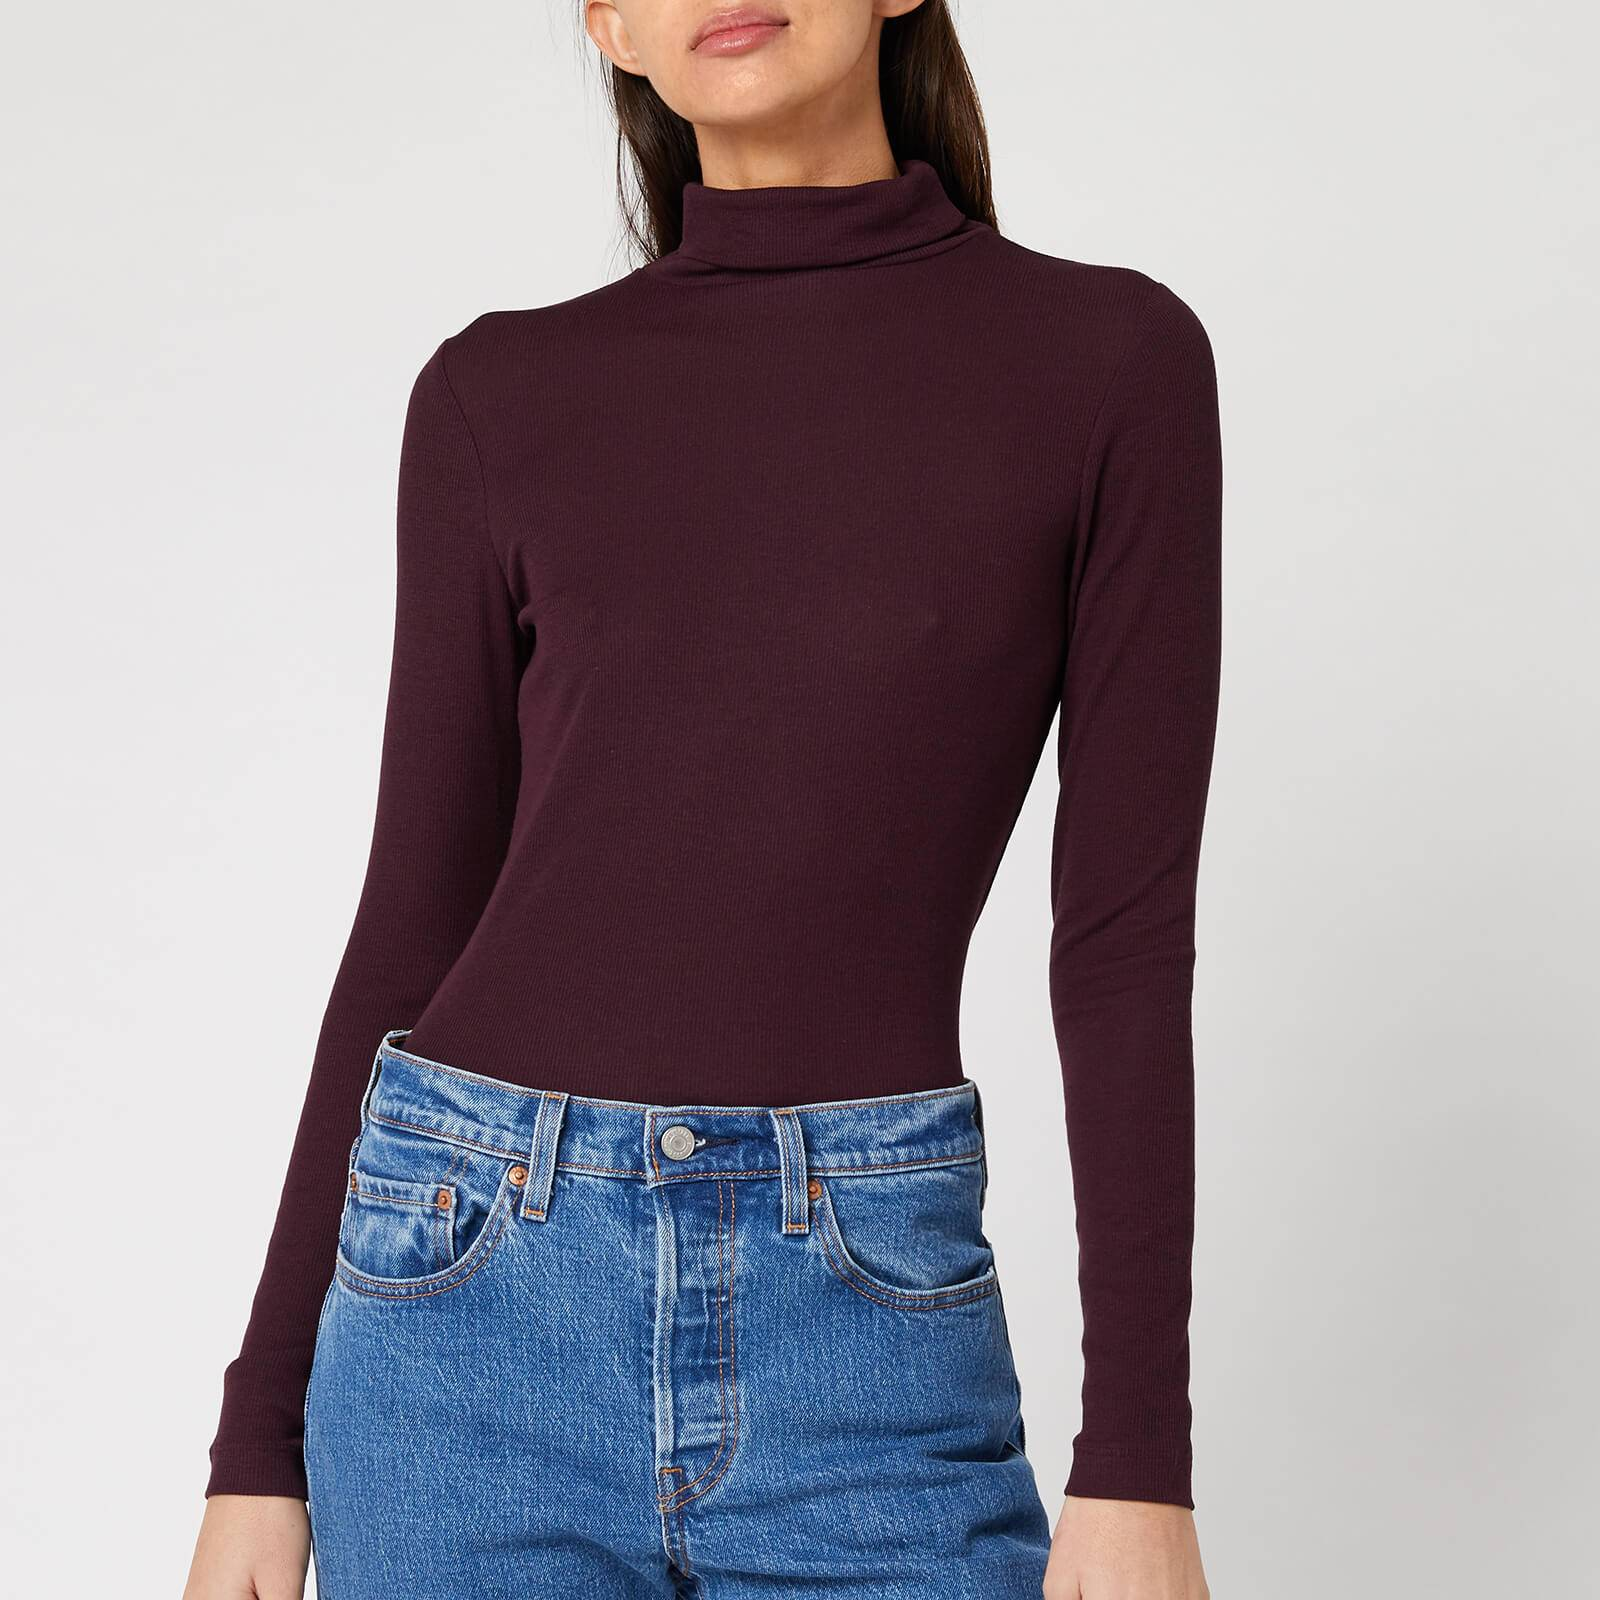 Whistles Women's Essential Polo Neck Top - Burgundy - UK 12